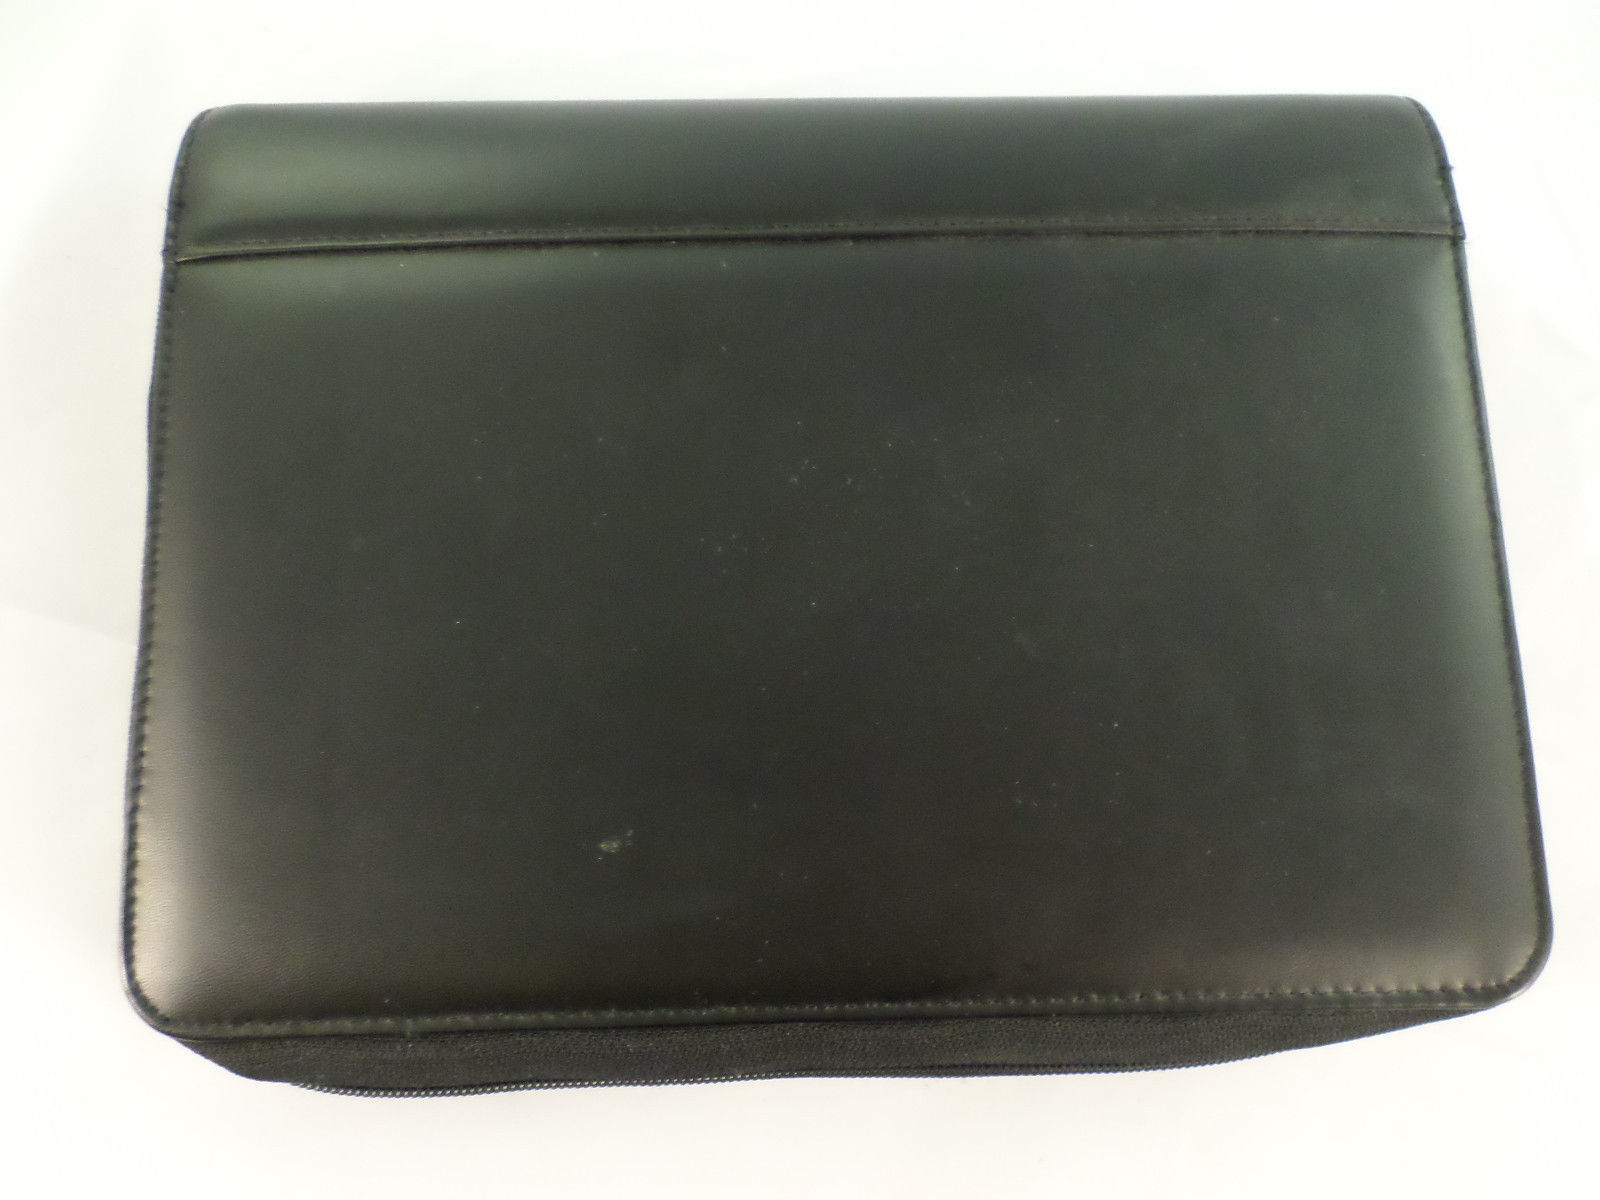 Franklin covey manmade faux leather black planner 365 w for Franklin covey business card holder